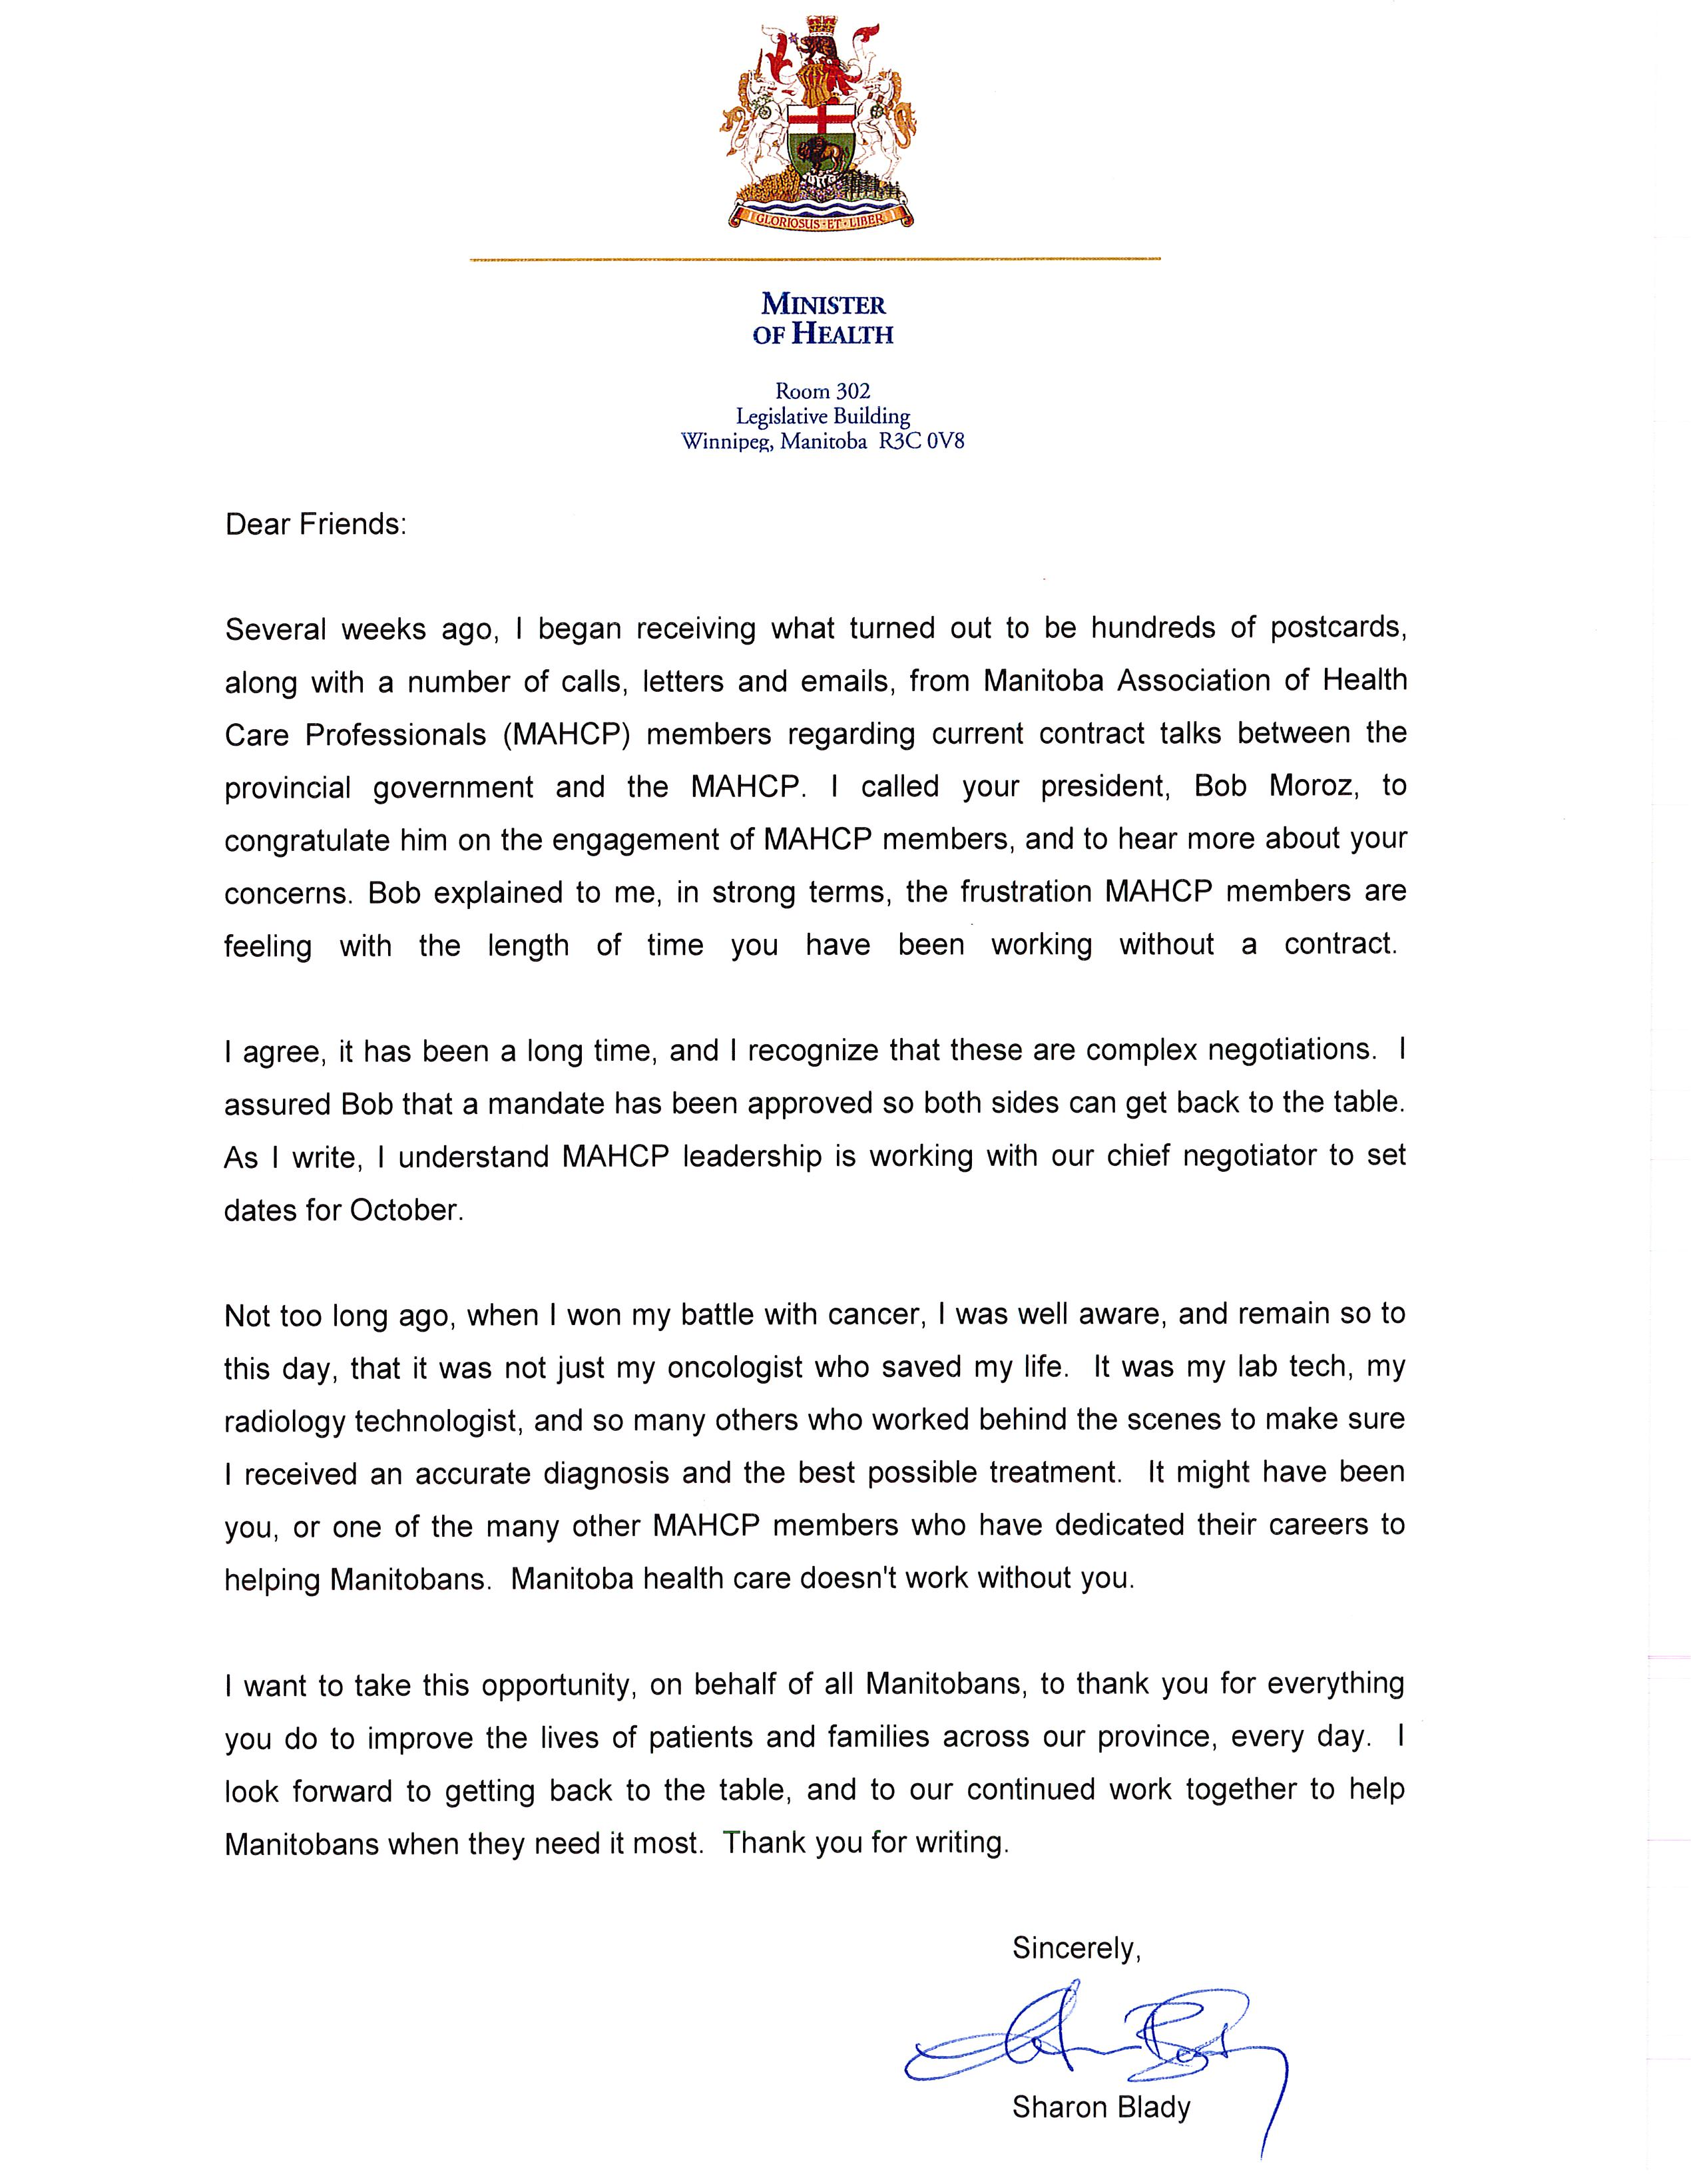 Letter to mahcp members from the honorable sharon blady minister of letter from min of health oct 2015 spiritdancerdesigns Images